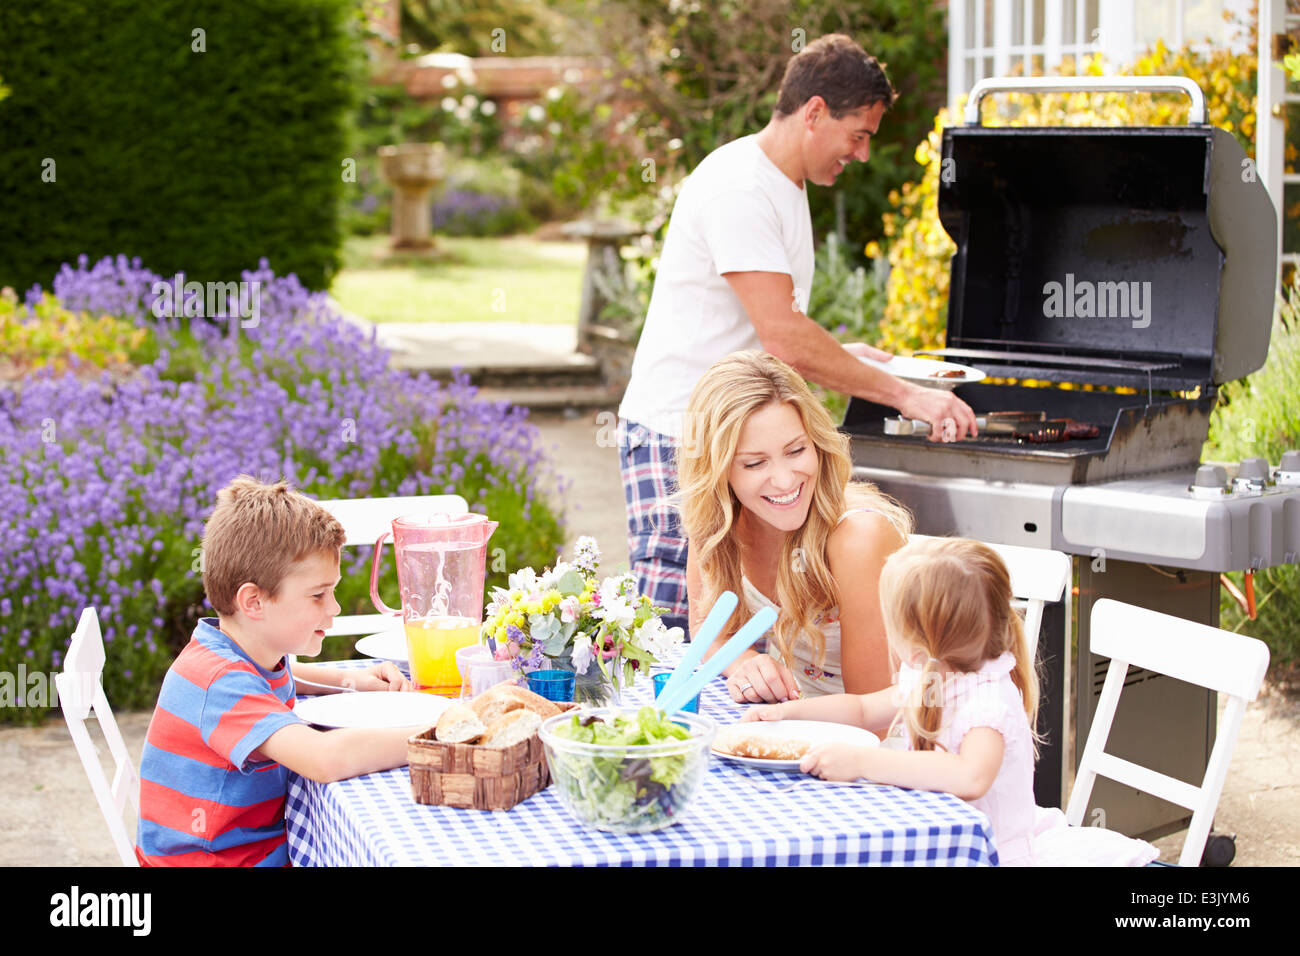 Family Enjoying barbecue en plein air dans le jardin Photo Stock